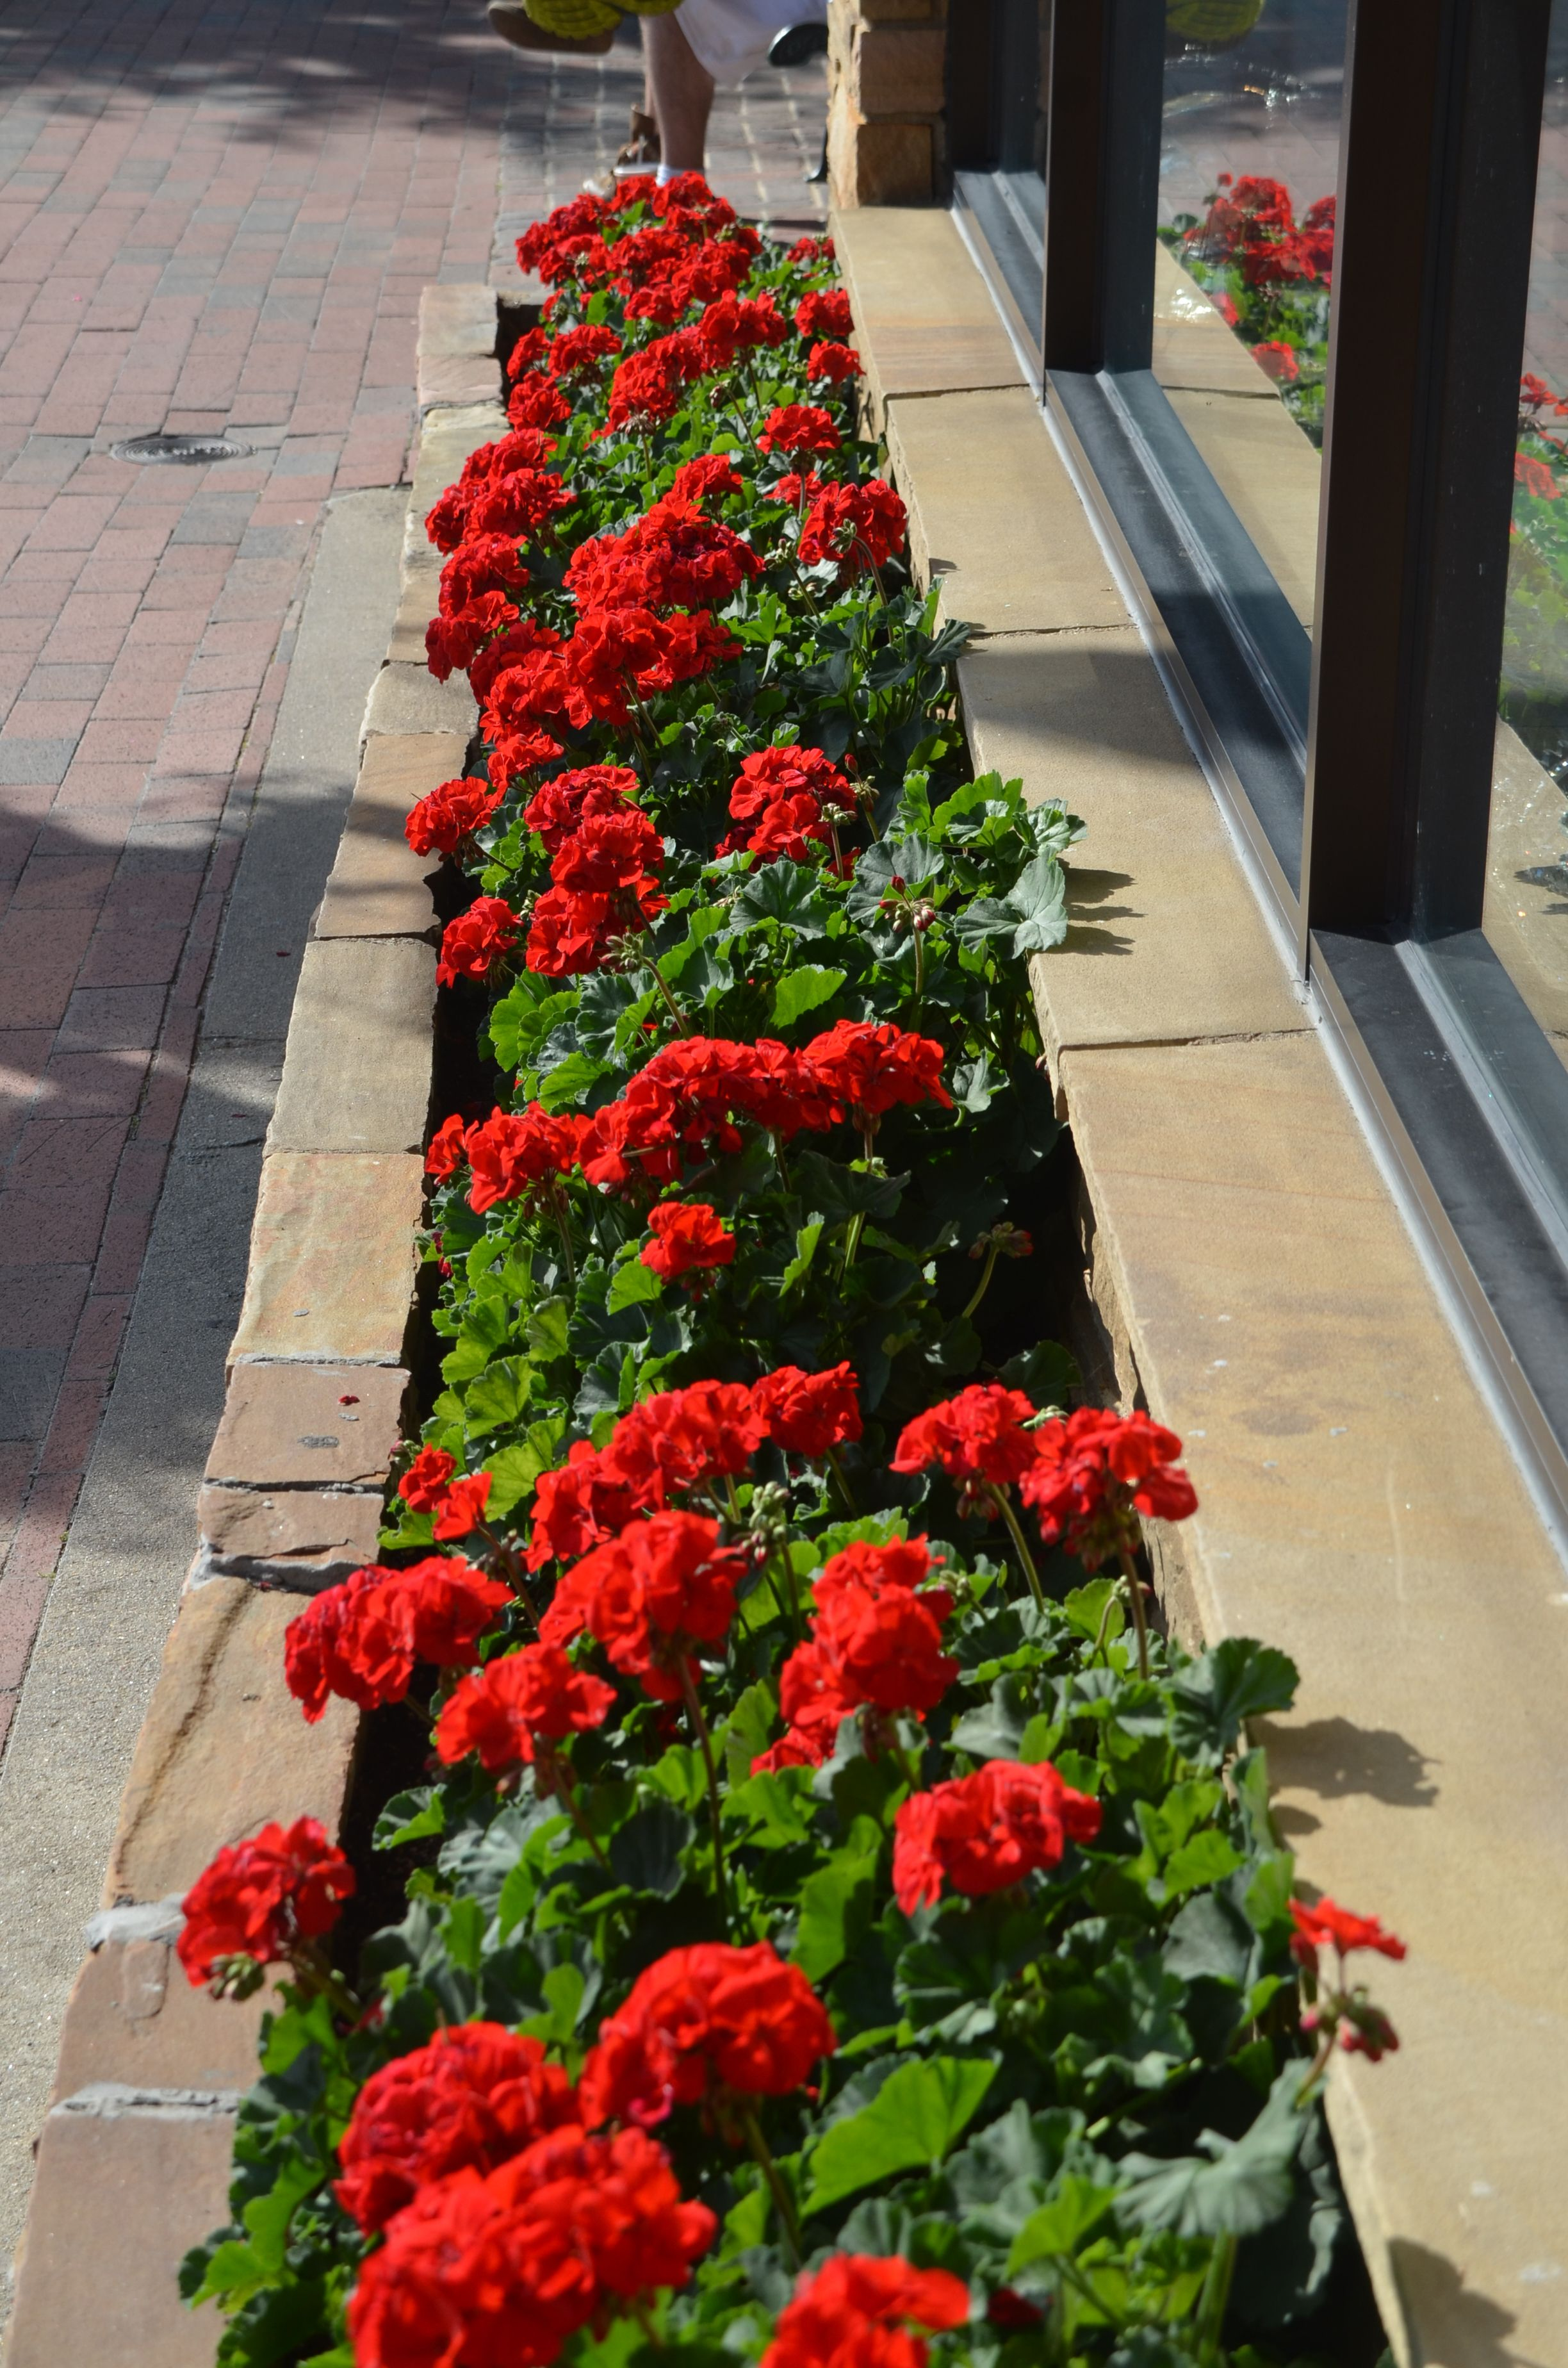 Main street shopping in highlands nc red geraniums line